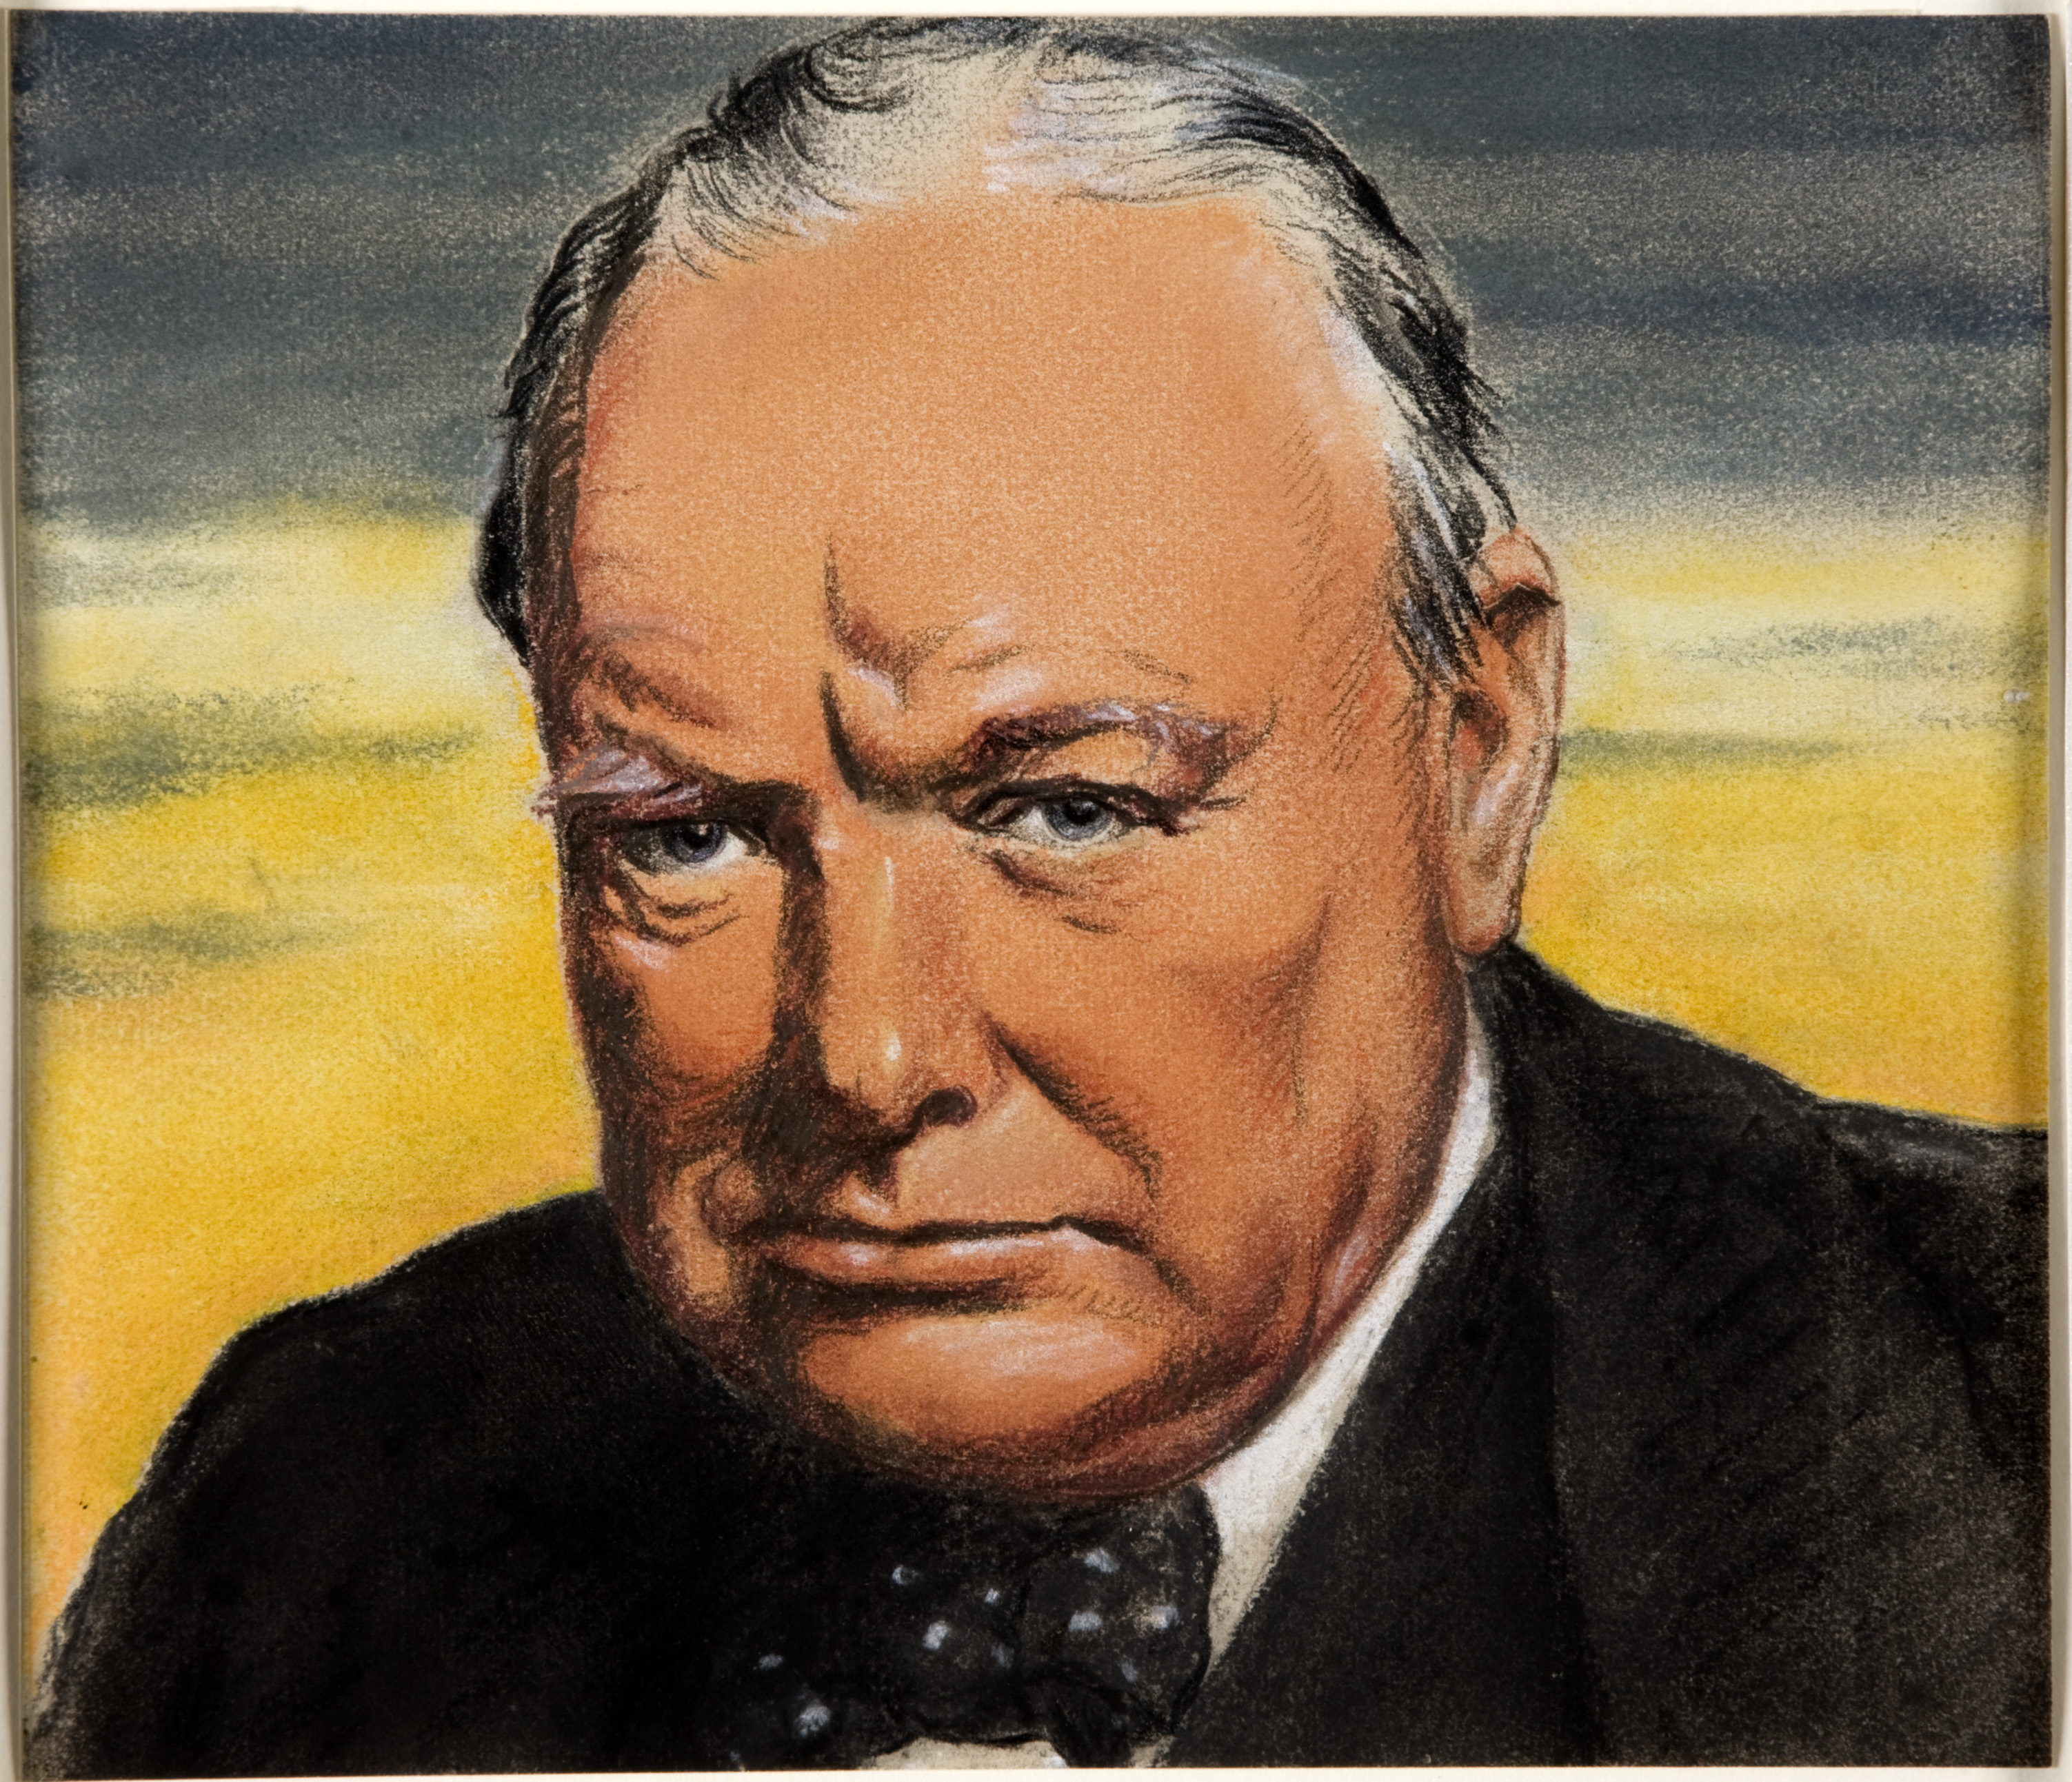 file inf pt winston churchill jpg  file inf3 75 pt2 winston churchill jpg